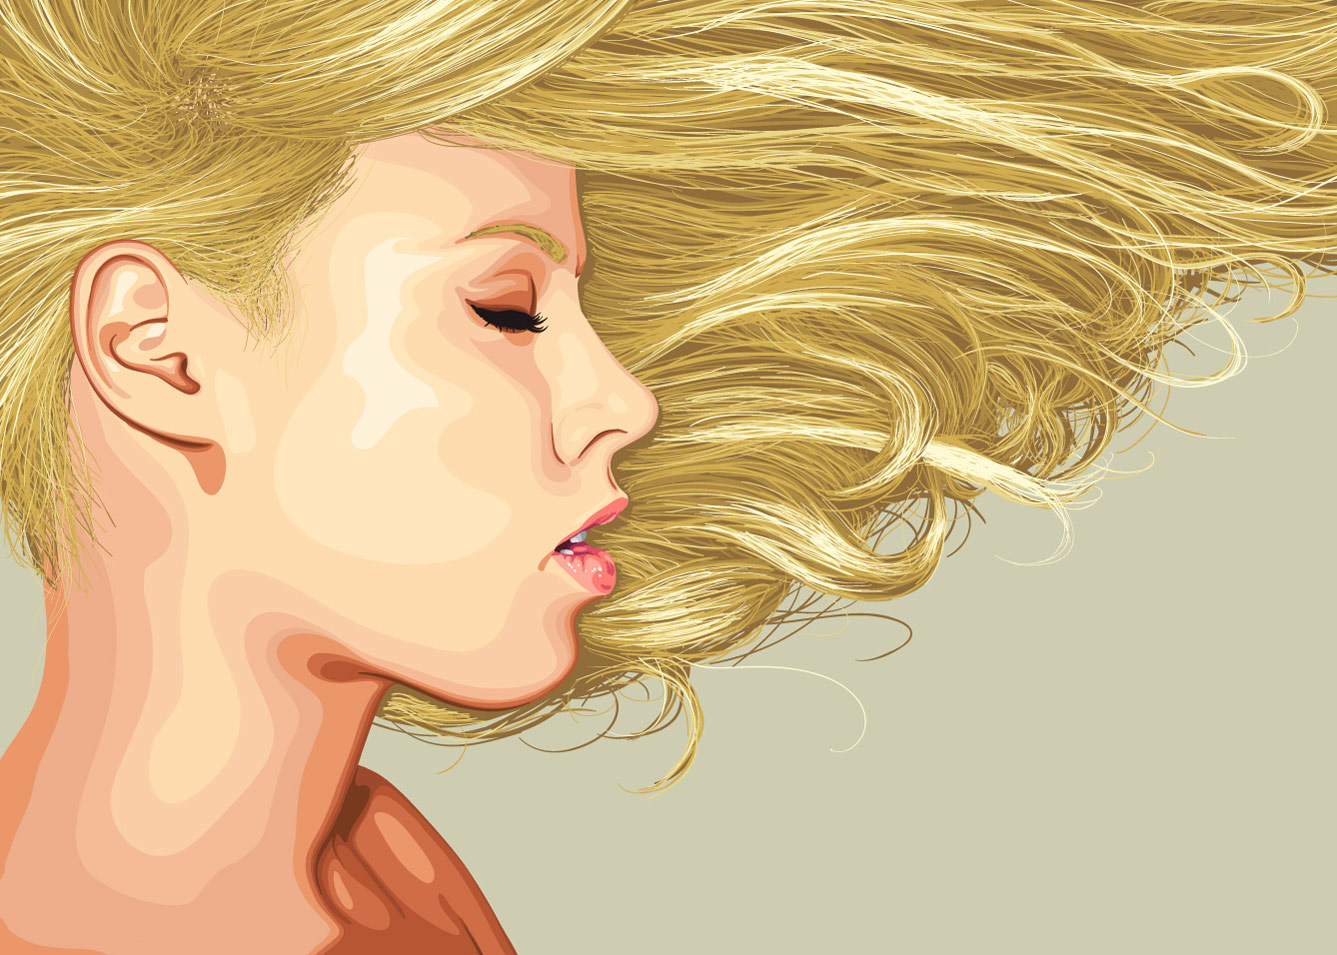 Girl With Blonde Hair By Gnyp On Deviantart